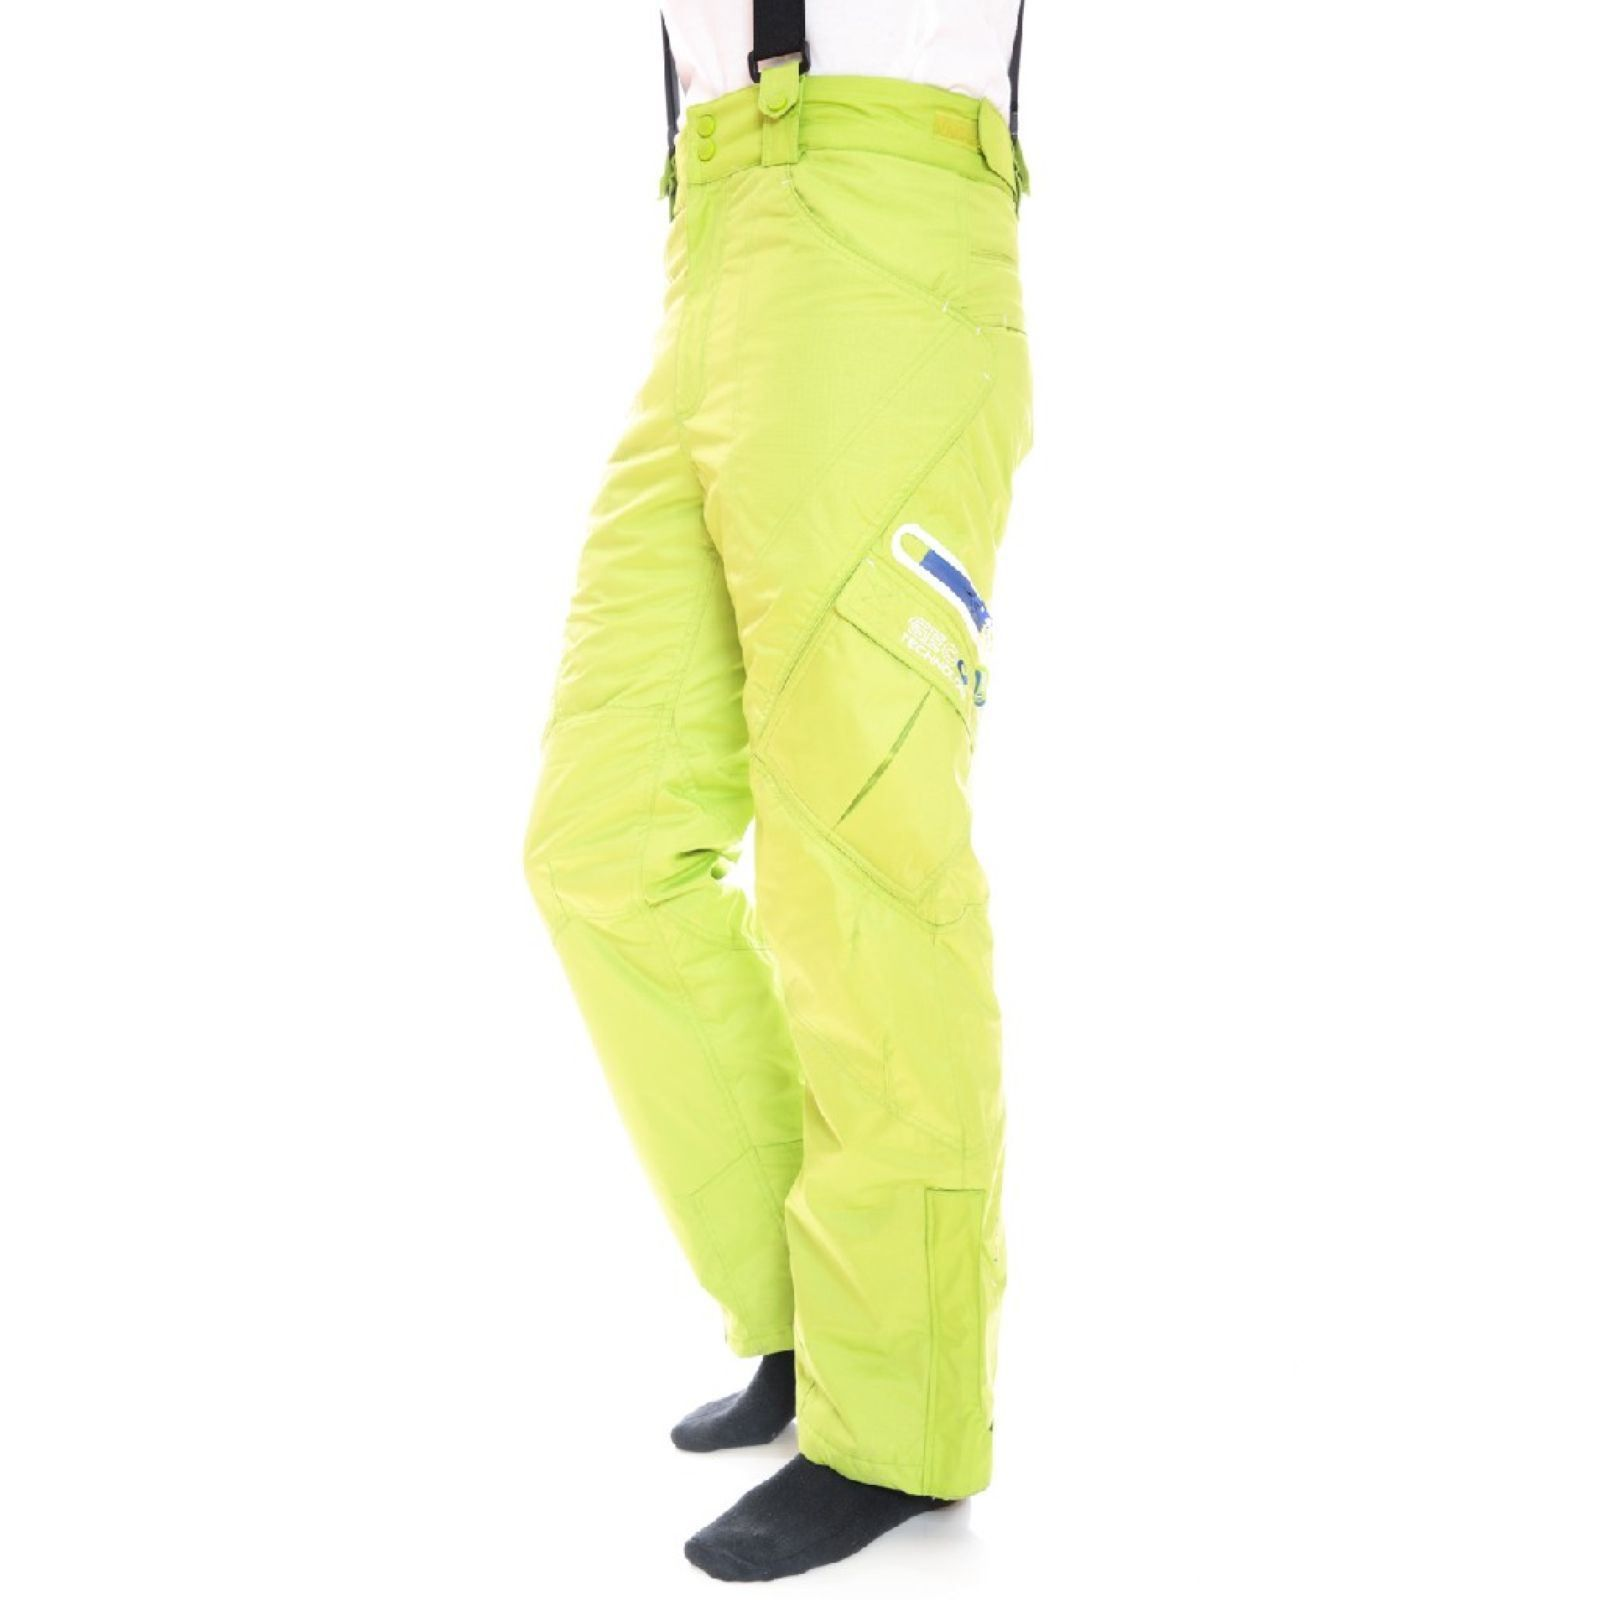 Standard Geographical Norway Geographical WilsonSkihose Minze OkiZuPX